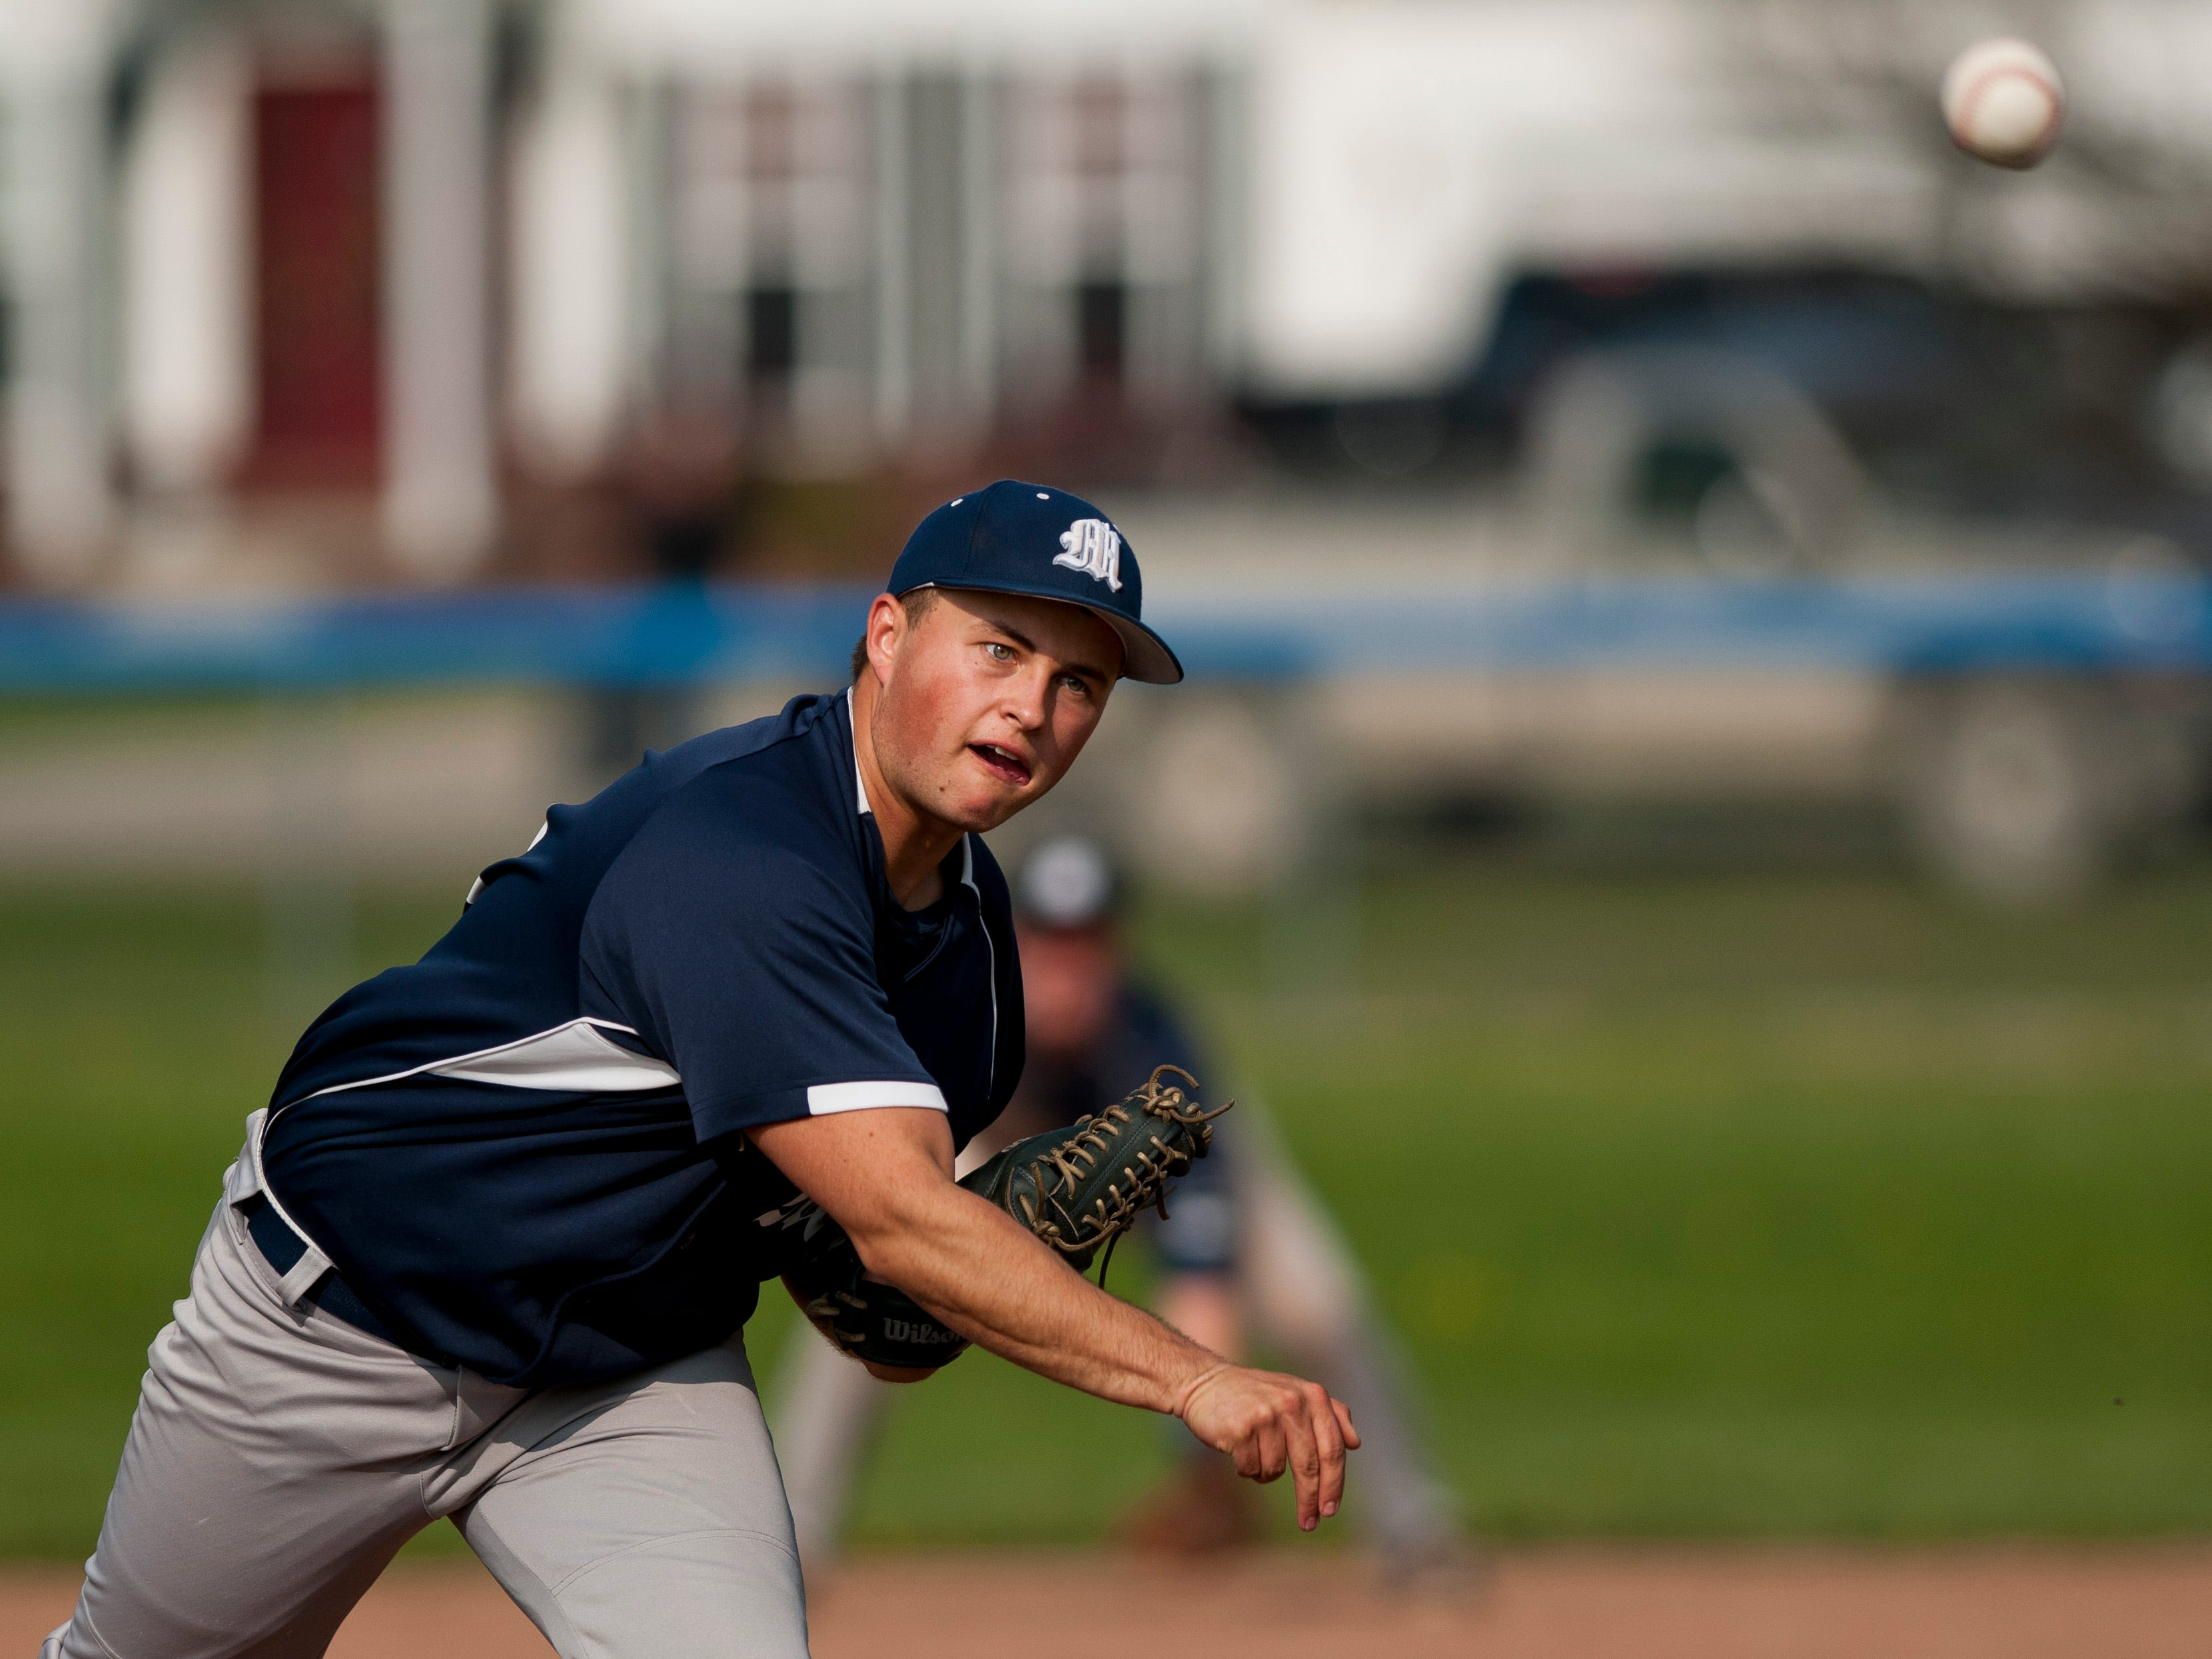 Marysville's Jacob Drewek throws a pitch during a baseball game Wednesday, May 6, 2015 at St. Clair High School.